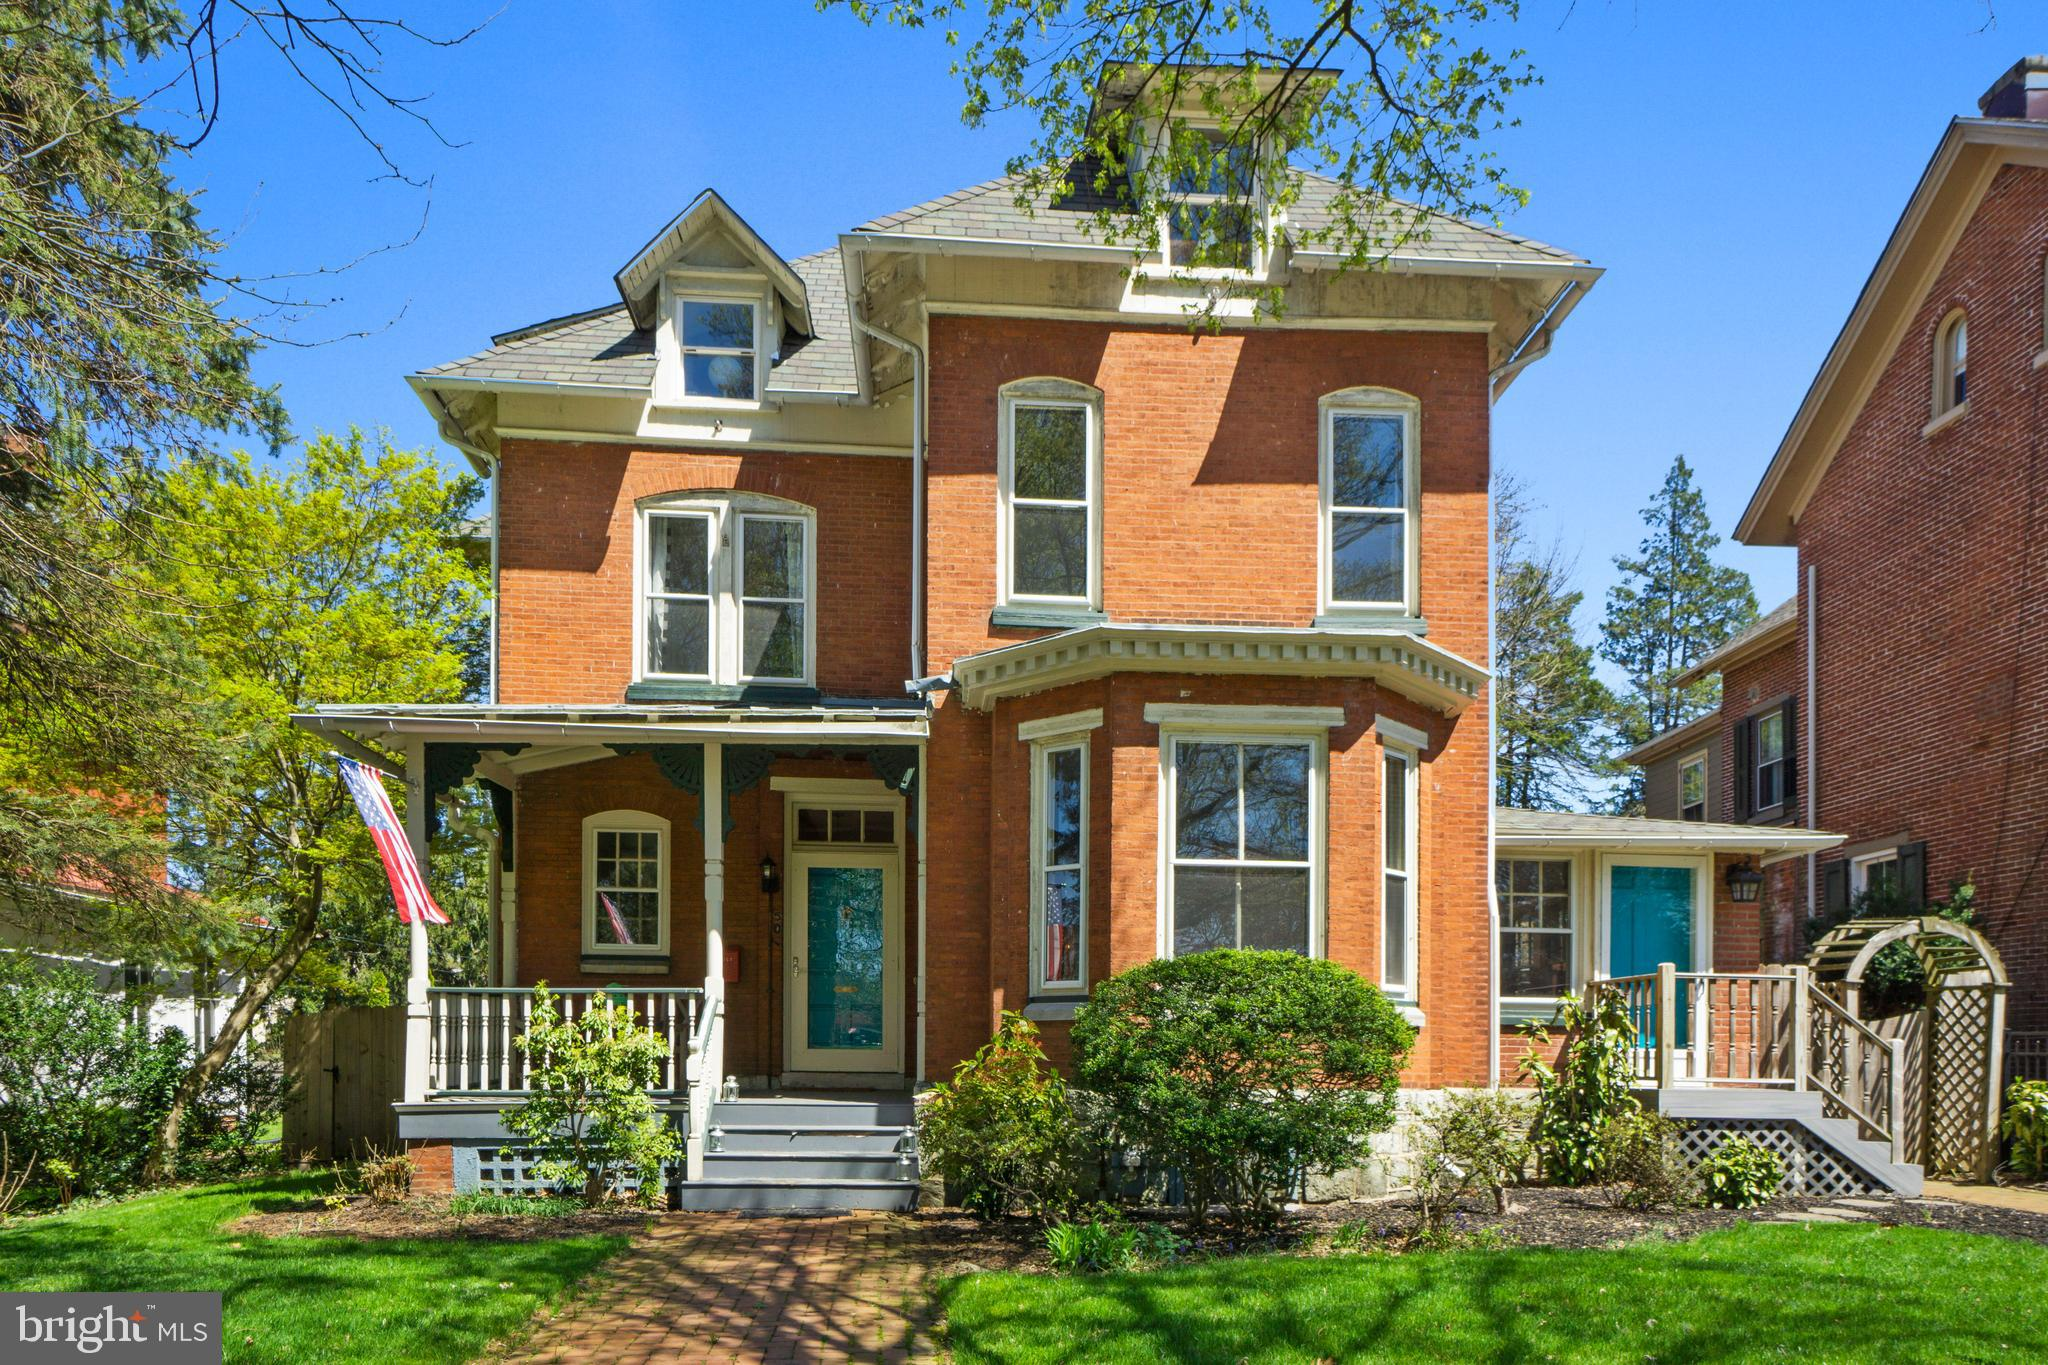 507 N HIGH STREET, WEST CHESTER, PA 19380